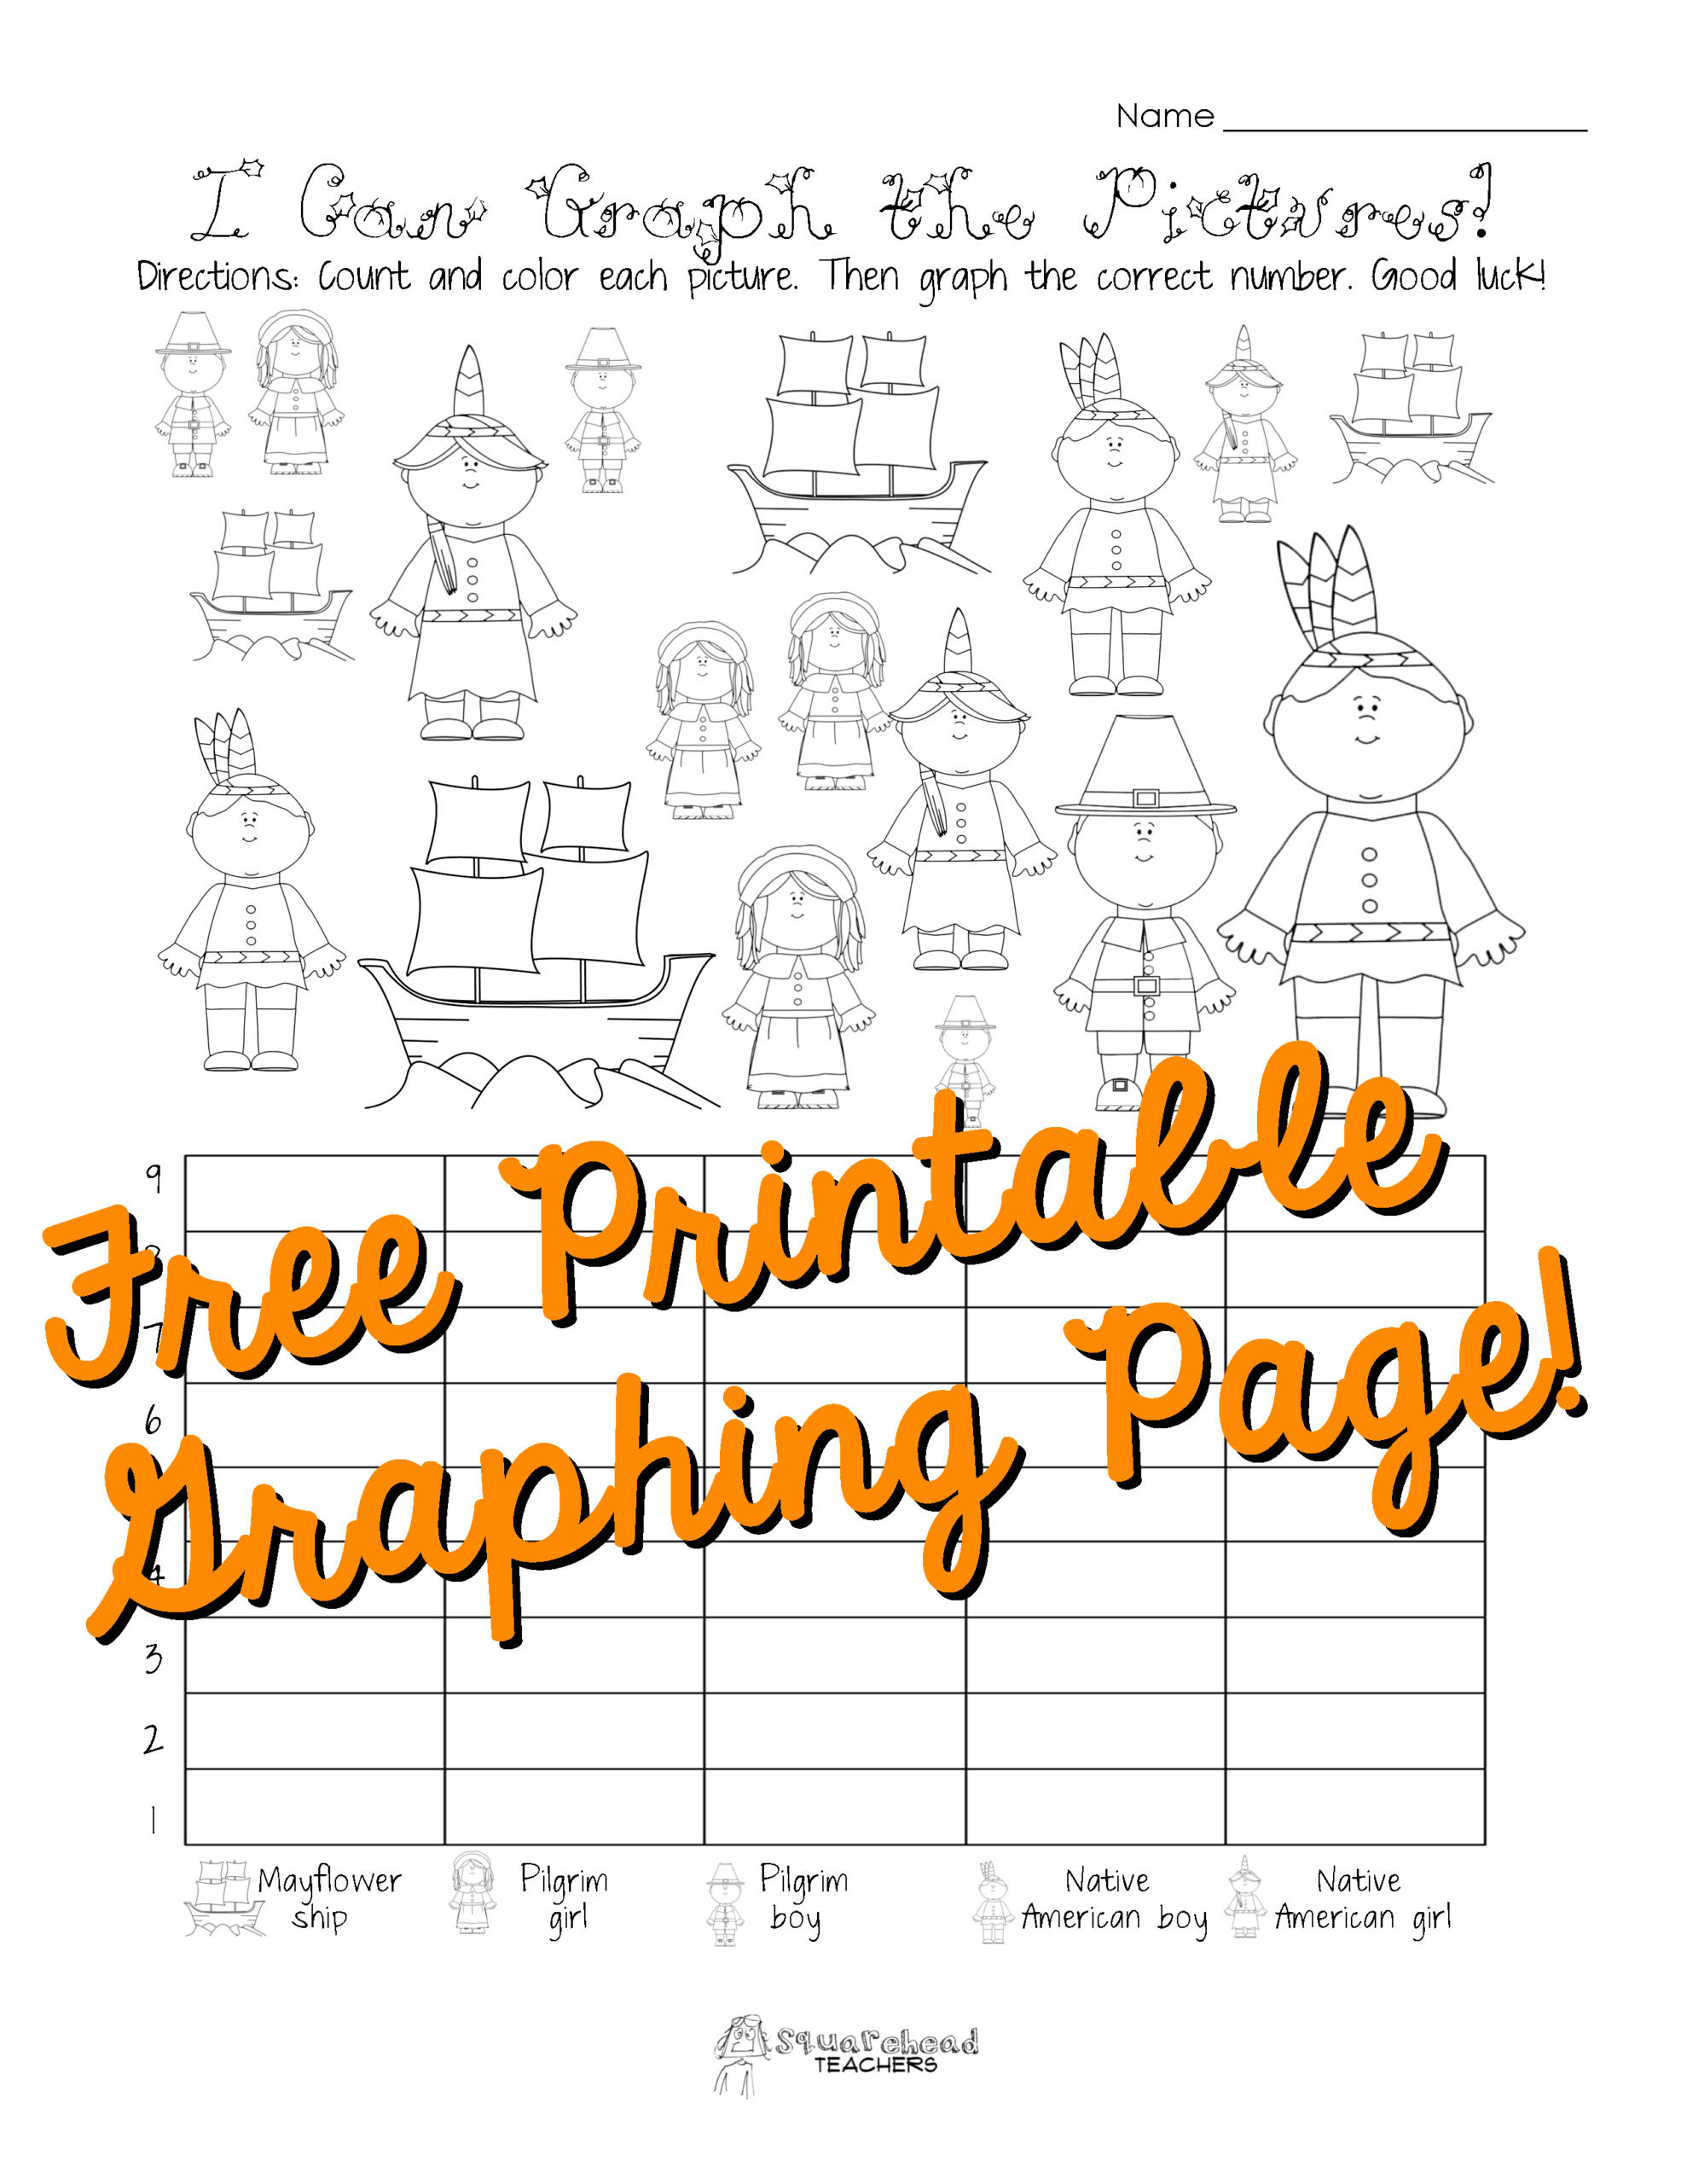 1st Grade Thanksgiving Worksheets Best Website to Learn Math Free Gingerbread Math Worksheets